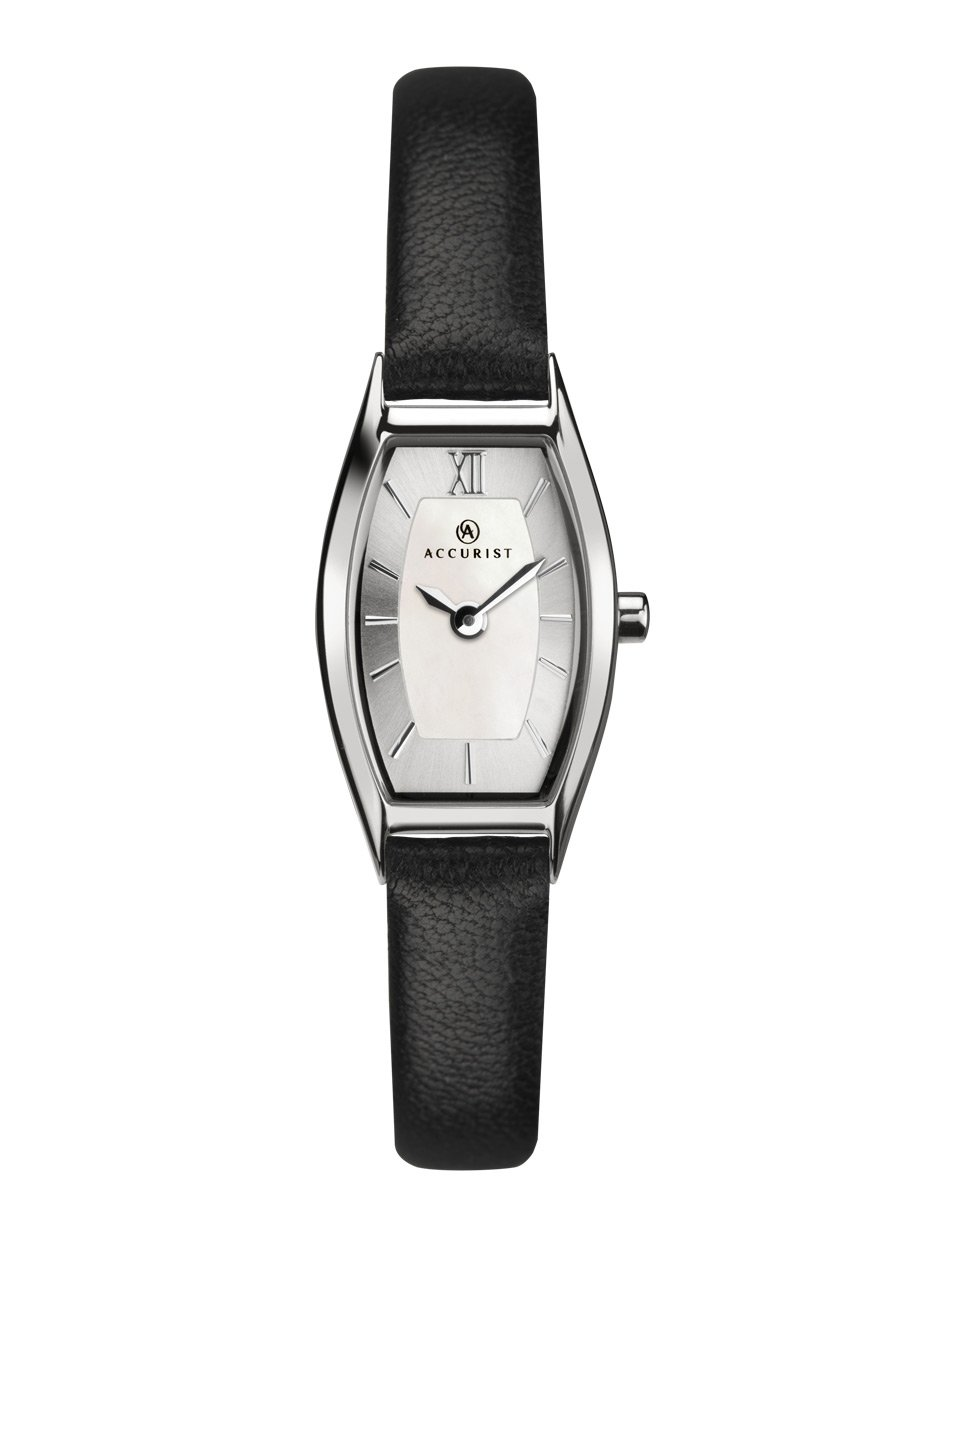 Ladies Accurist Watch with Black Strap 8274